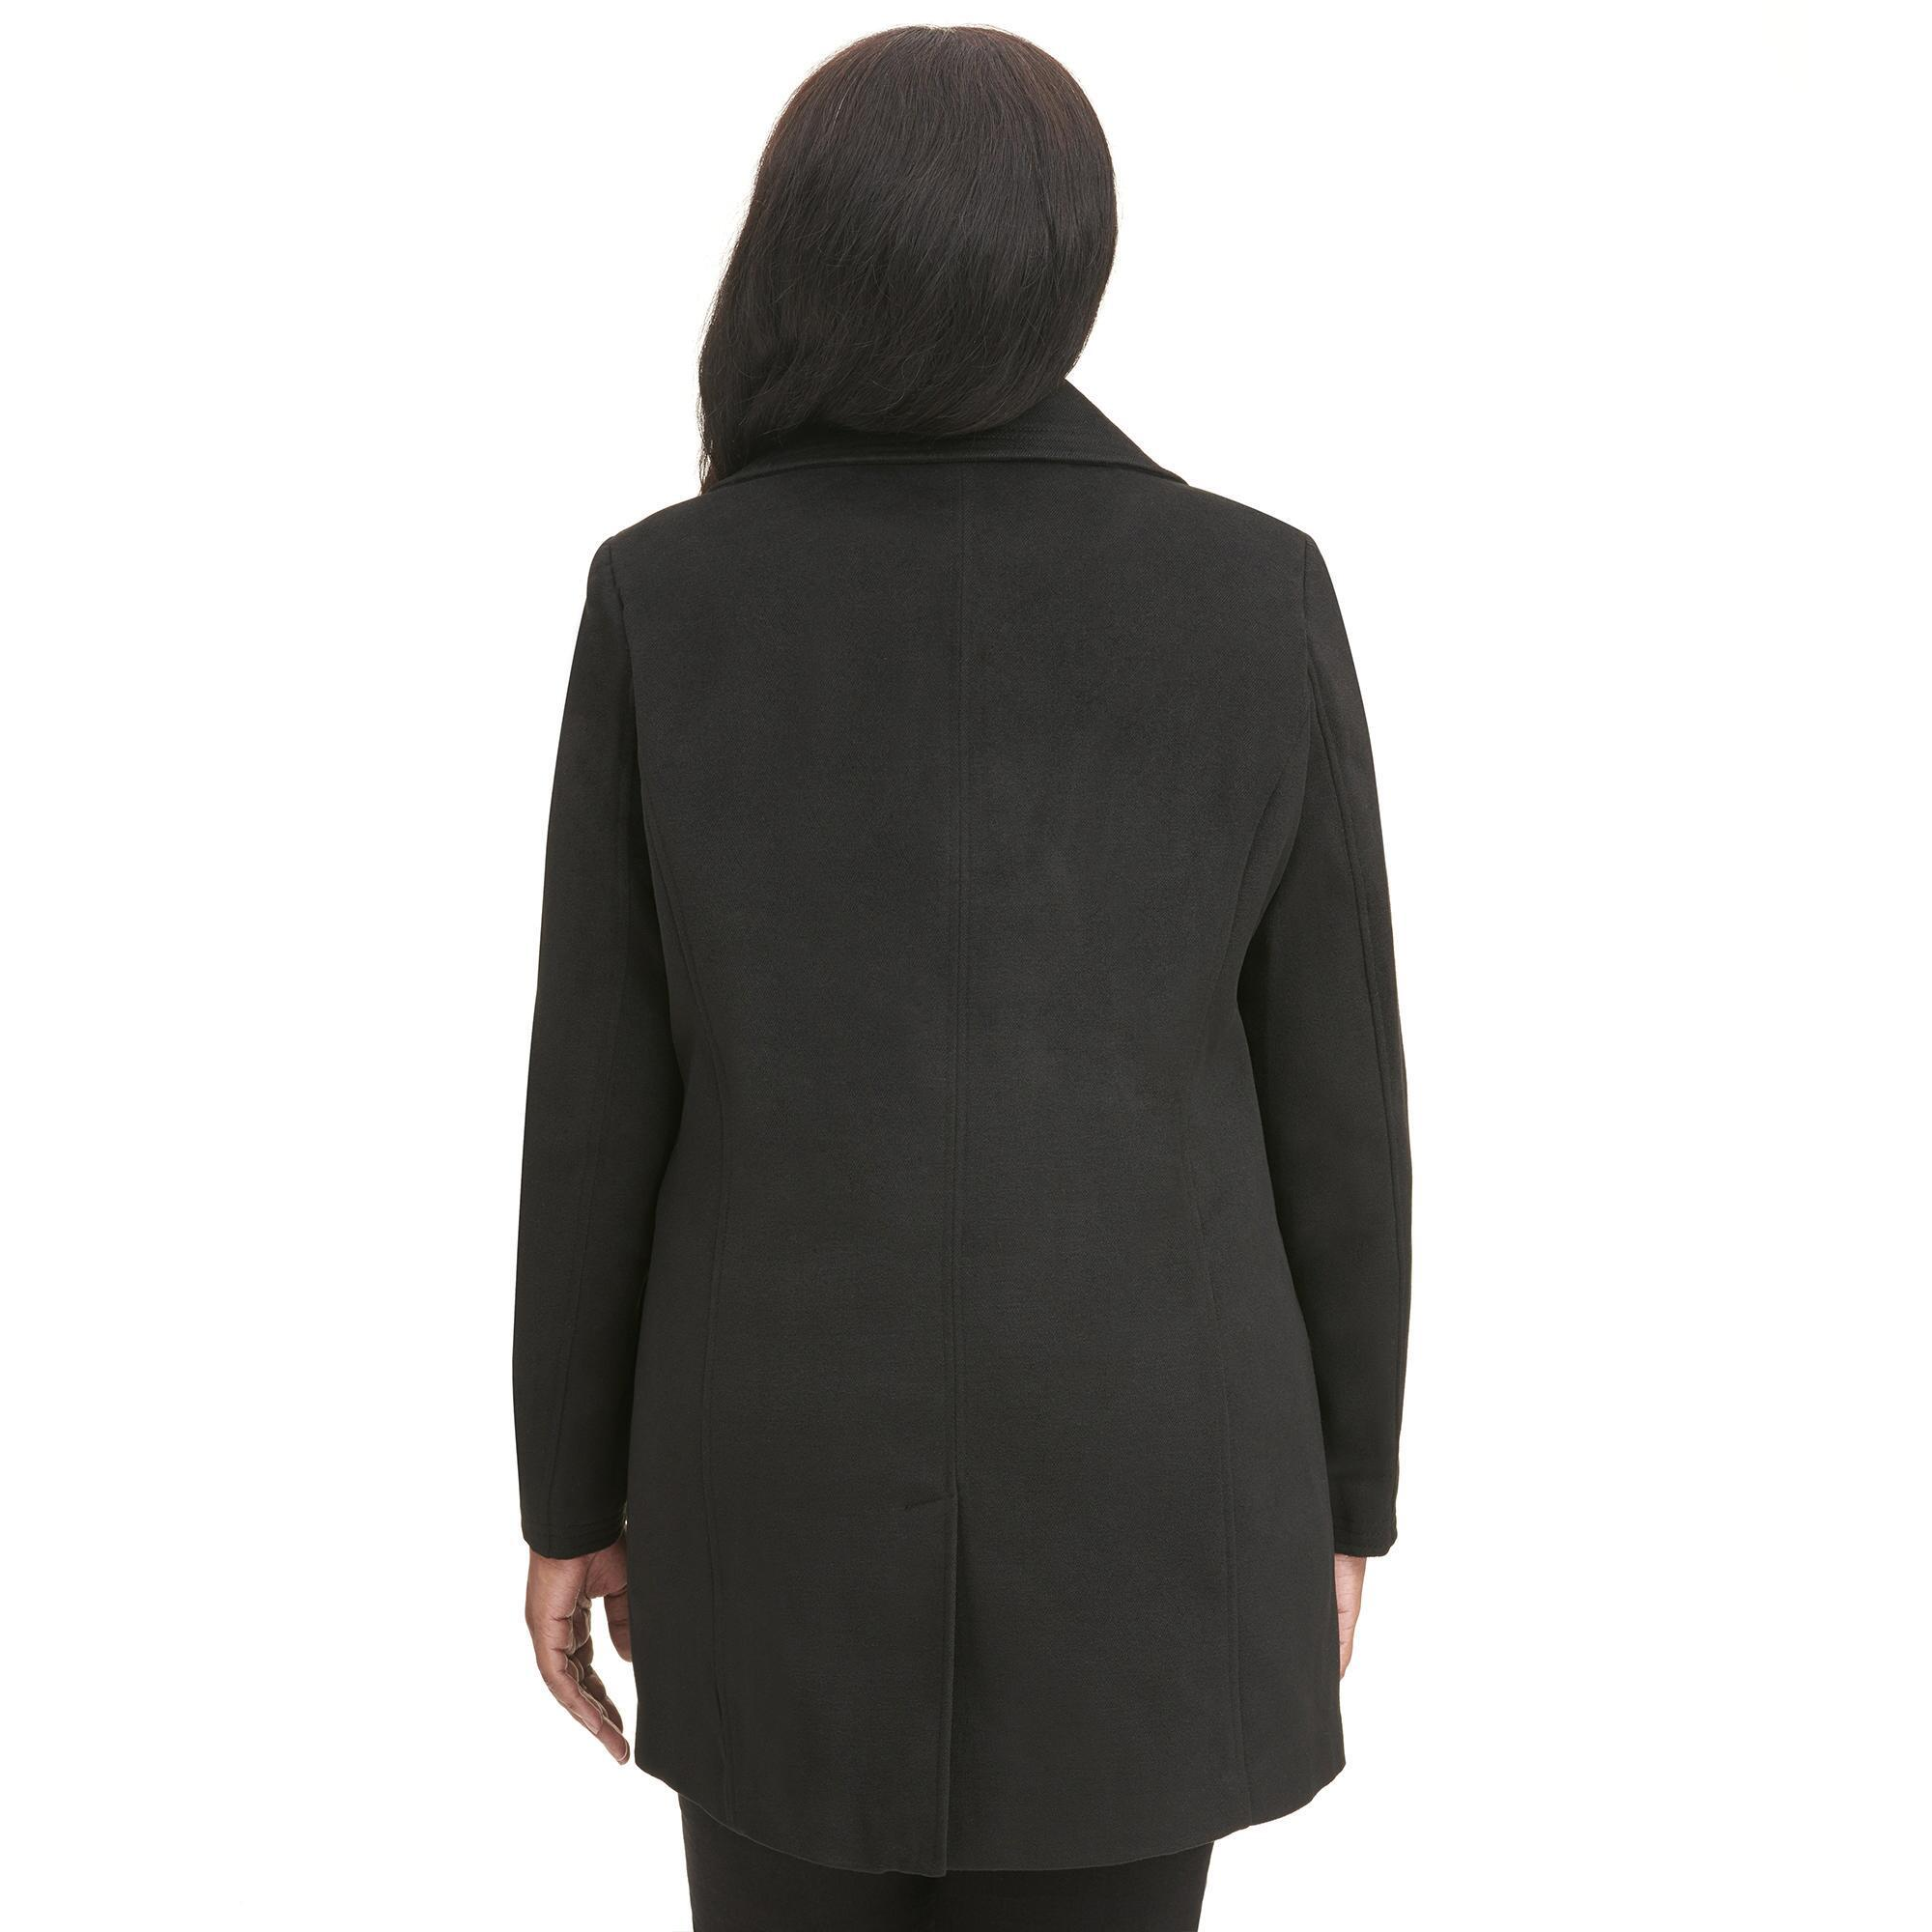 22a1c08f1a1 ... Plus Size Black Rivet Double-breasted Faux-wool Jacket - Lyst. View  fullscreen